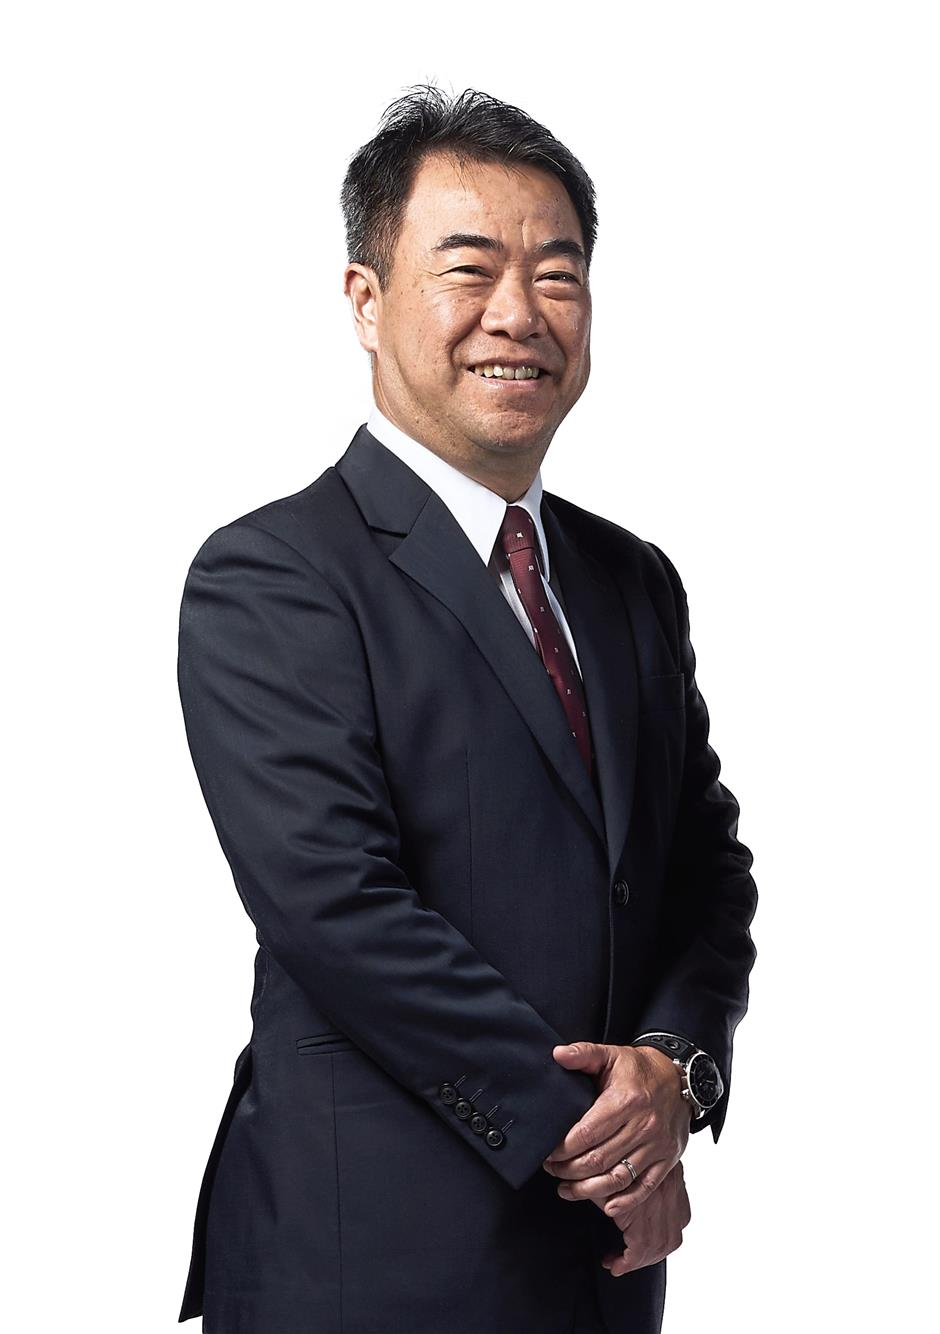 Ngan Chee Meng, CEO of Gamuda Land